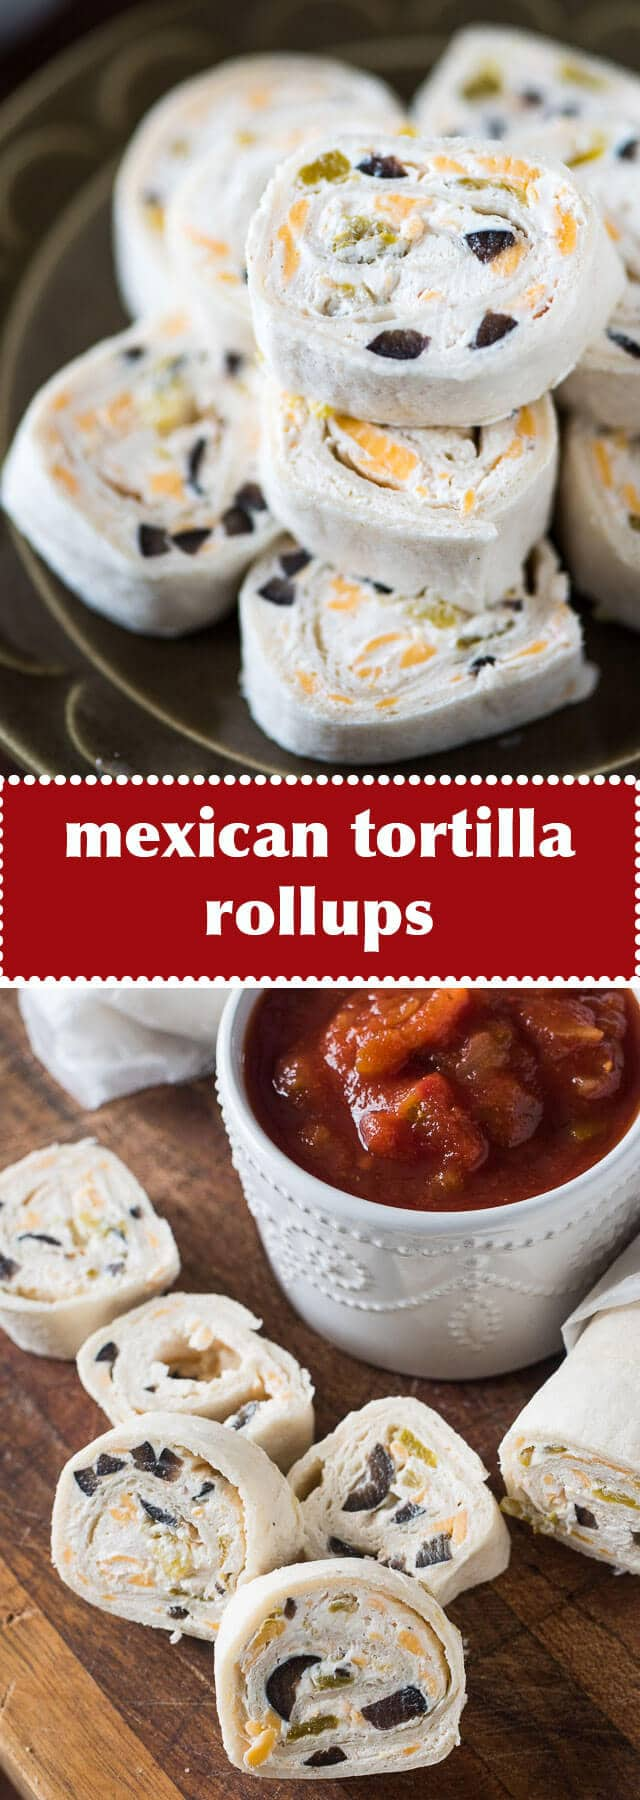 These bite-size Mexican Tortilla Rollups are an easy appetizer to share at a party. Roll up, refrigerate, slice and serve with salsa! #appetizer #pinwheels #rollups #mexican